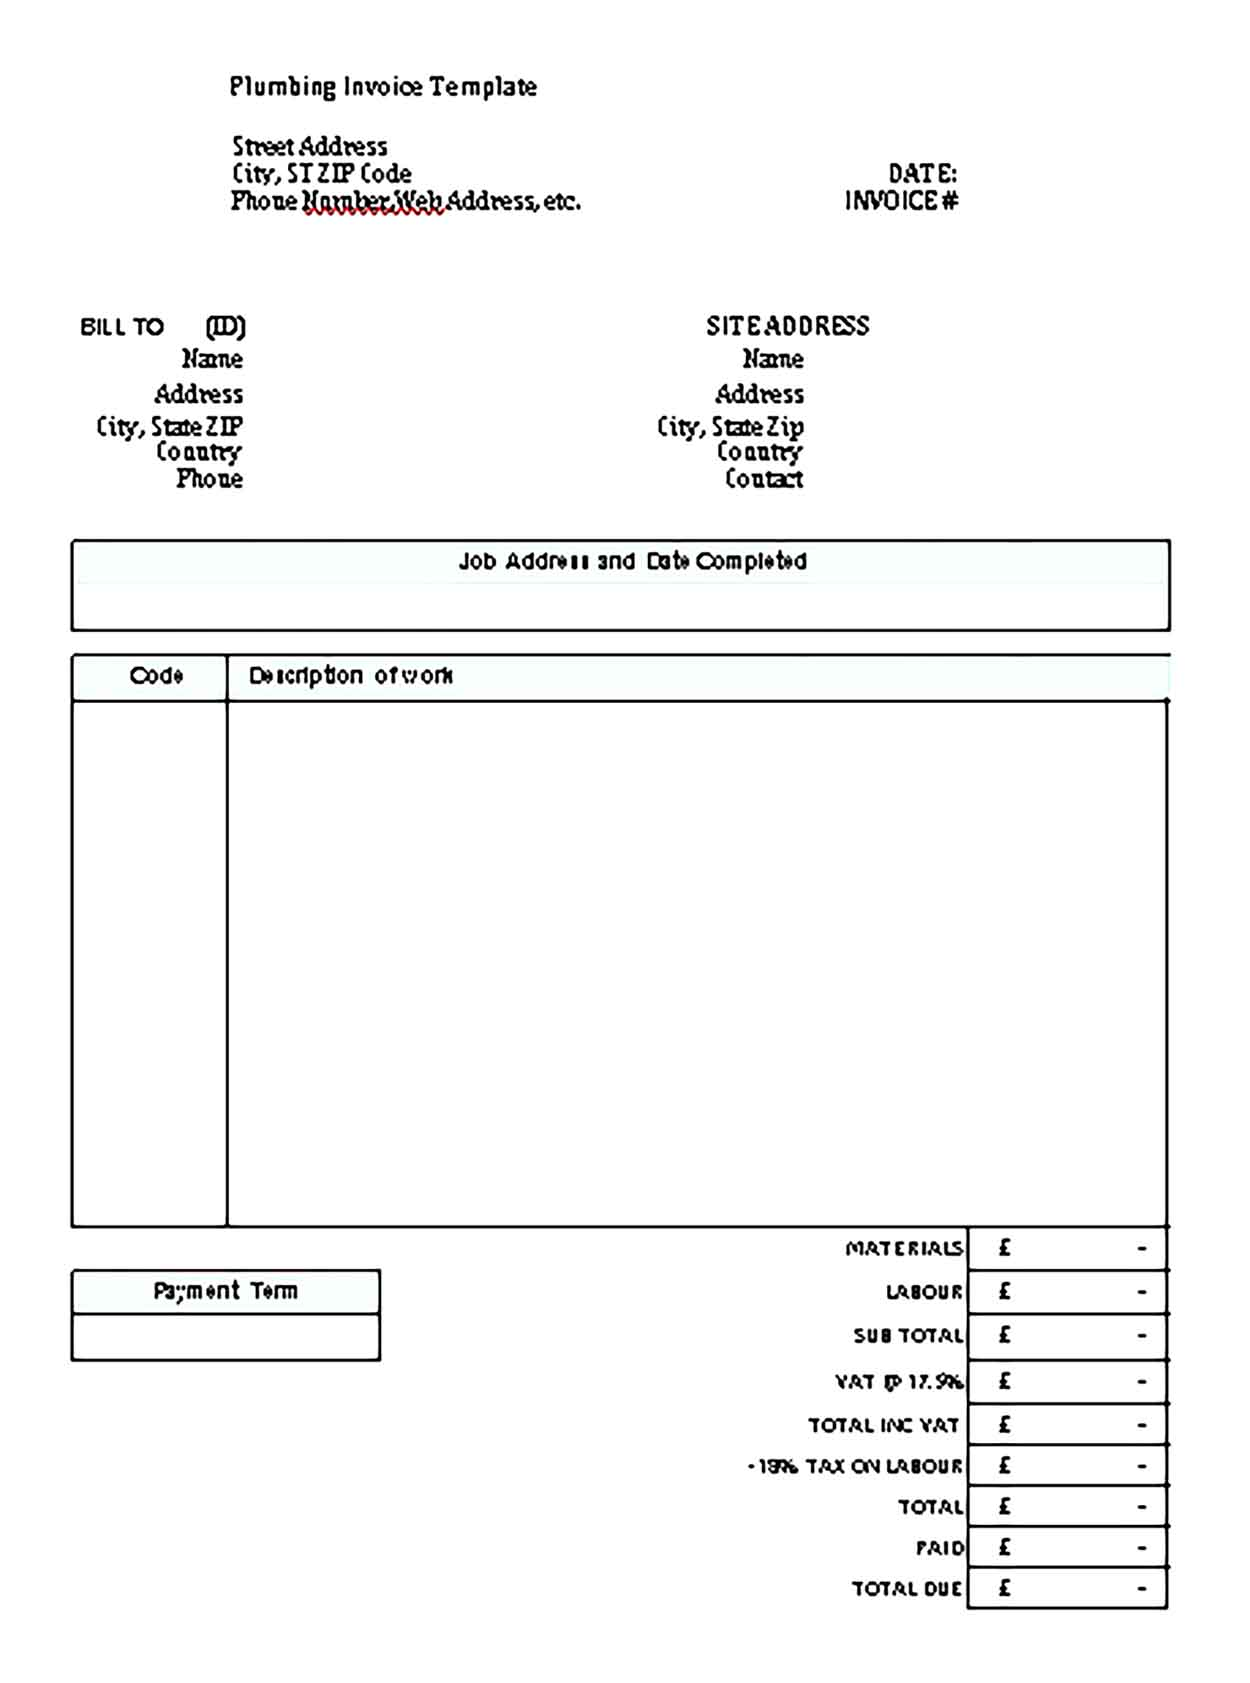 Sample Templates plumbing invoice format